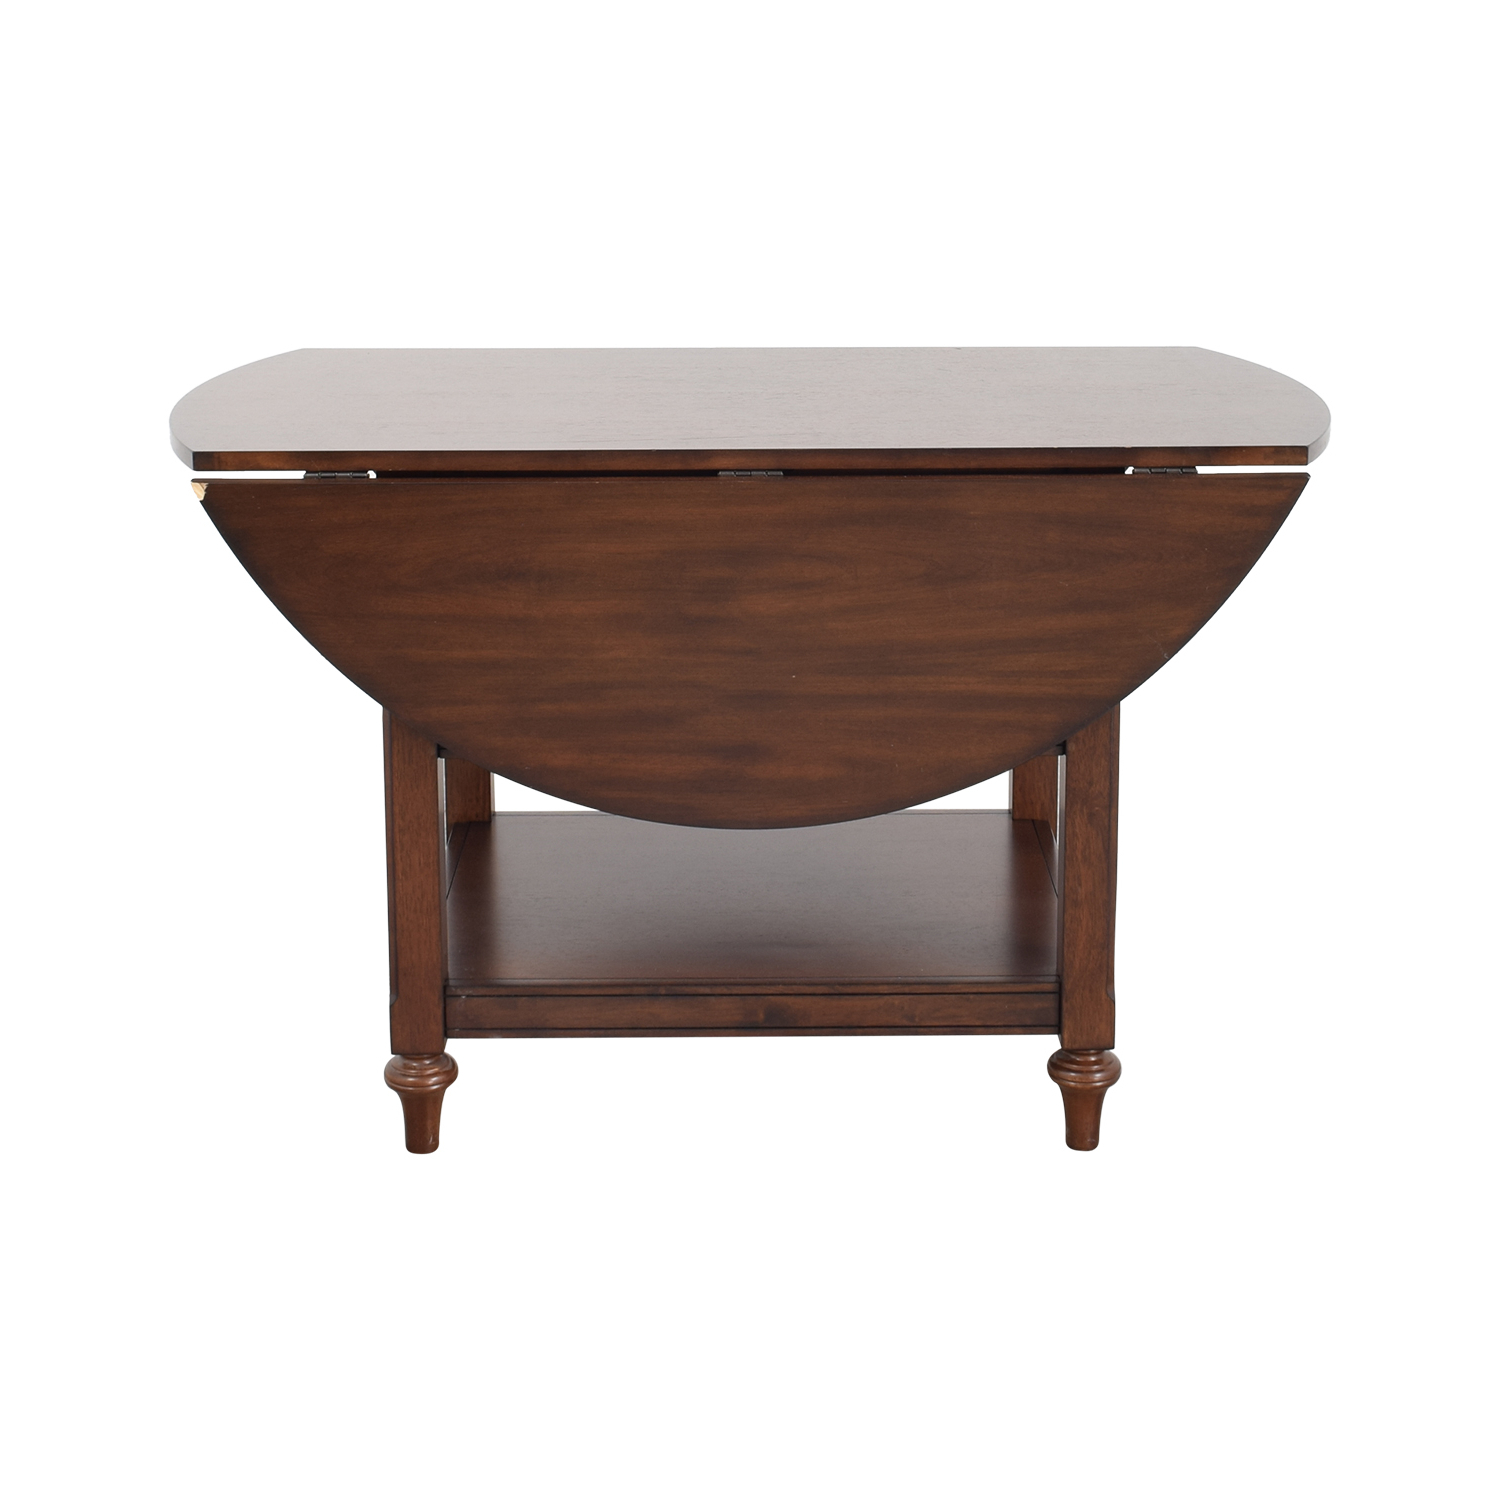 [%66% Off – Pottery Barn Pottery Barn Drop Leaf Kitchen Table / Tables Intended For Most Popular Antique White Shayne Drop Leaf Kitchen Tables|Antique White Shayne Drop Leaf Kitchen Tables In Current 66% Off – Pottery Barn Pottery Barn Drop Leaf Kitchen Table / Tables|Most Popular Antique White Shayne Drop Leaf Kitchen Tables Throughout 66% Off – Pottery Barn Pottery Barn Drop Leaf Kitchen Table / Tables|2019 66% Off – Pottery Barn Pottery Barn Drop Leaf Kitchen Table / Tables Throughout Antique White Shayne Drop Leaf Kitchen Tables%] (View 23 of 25)